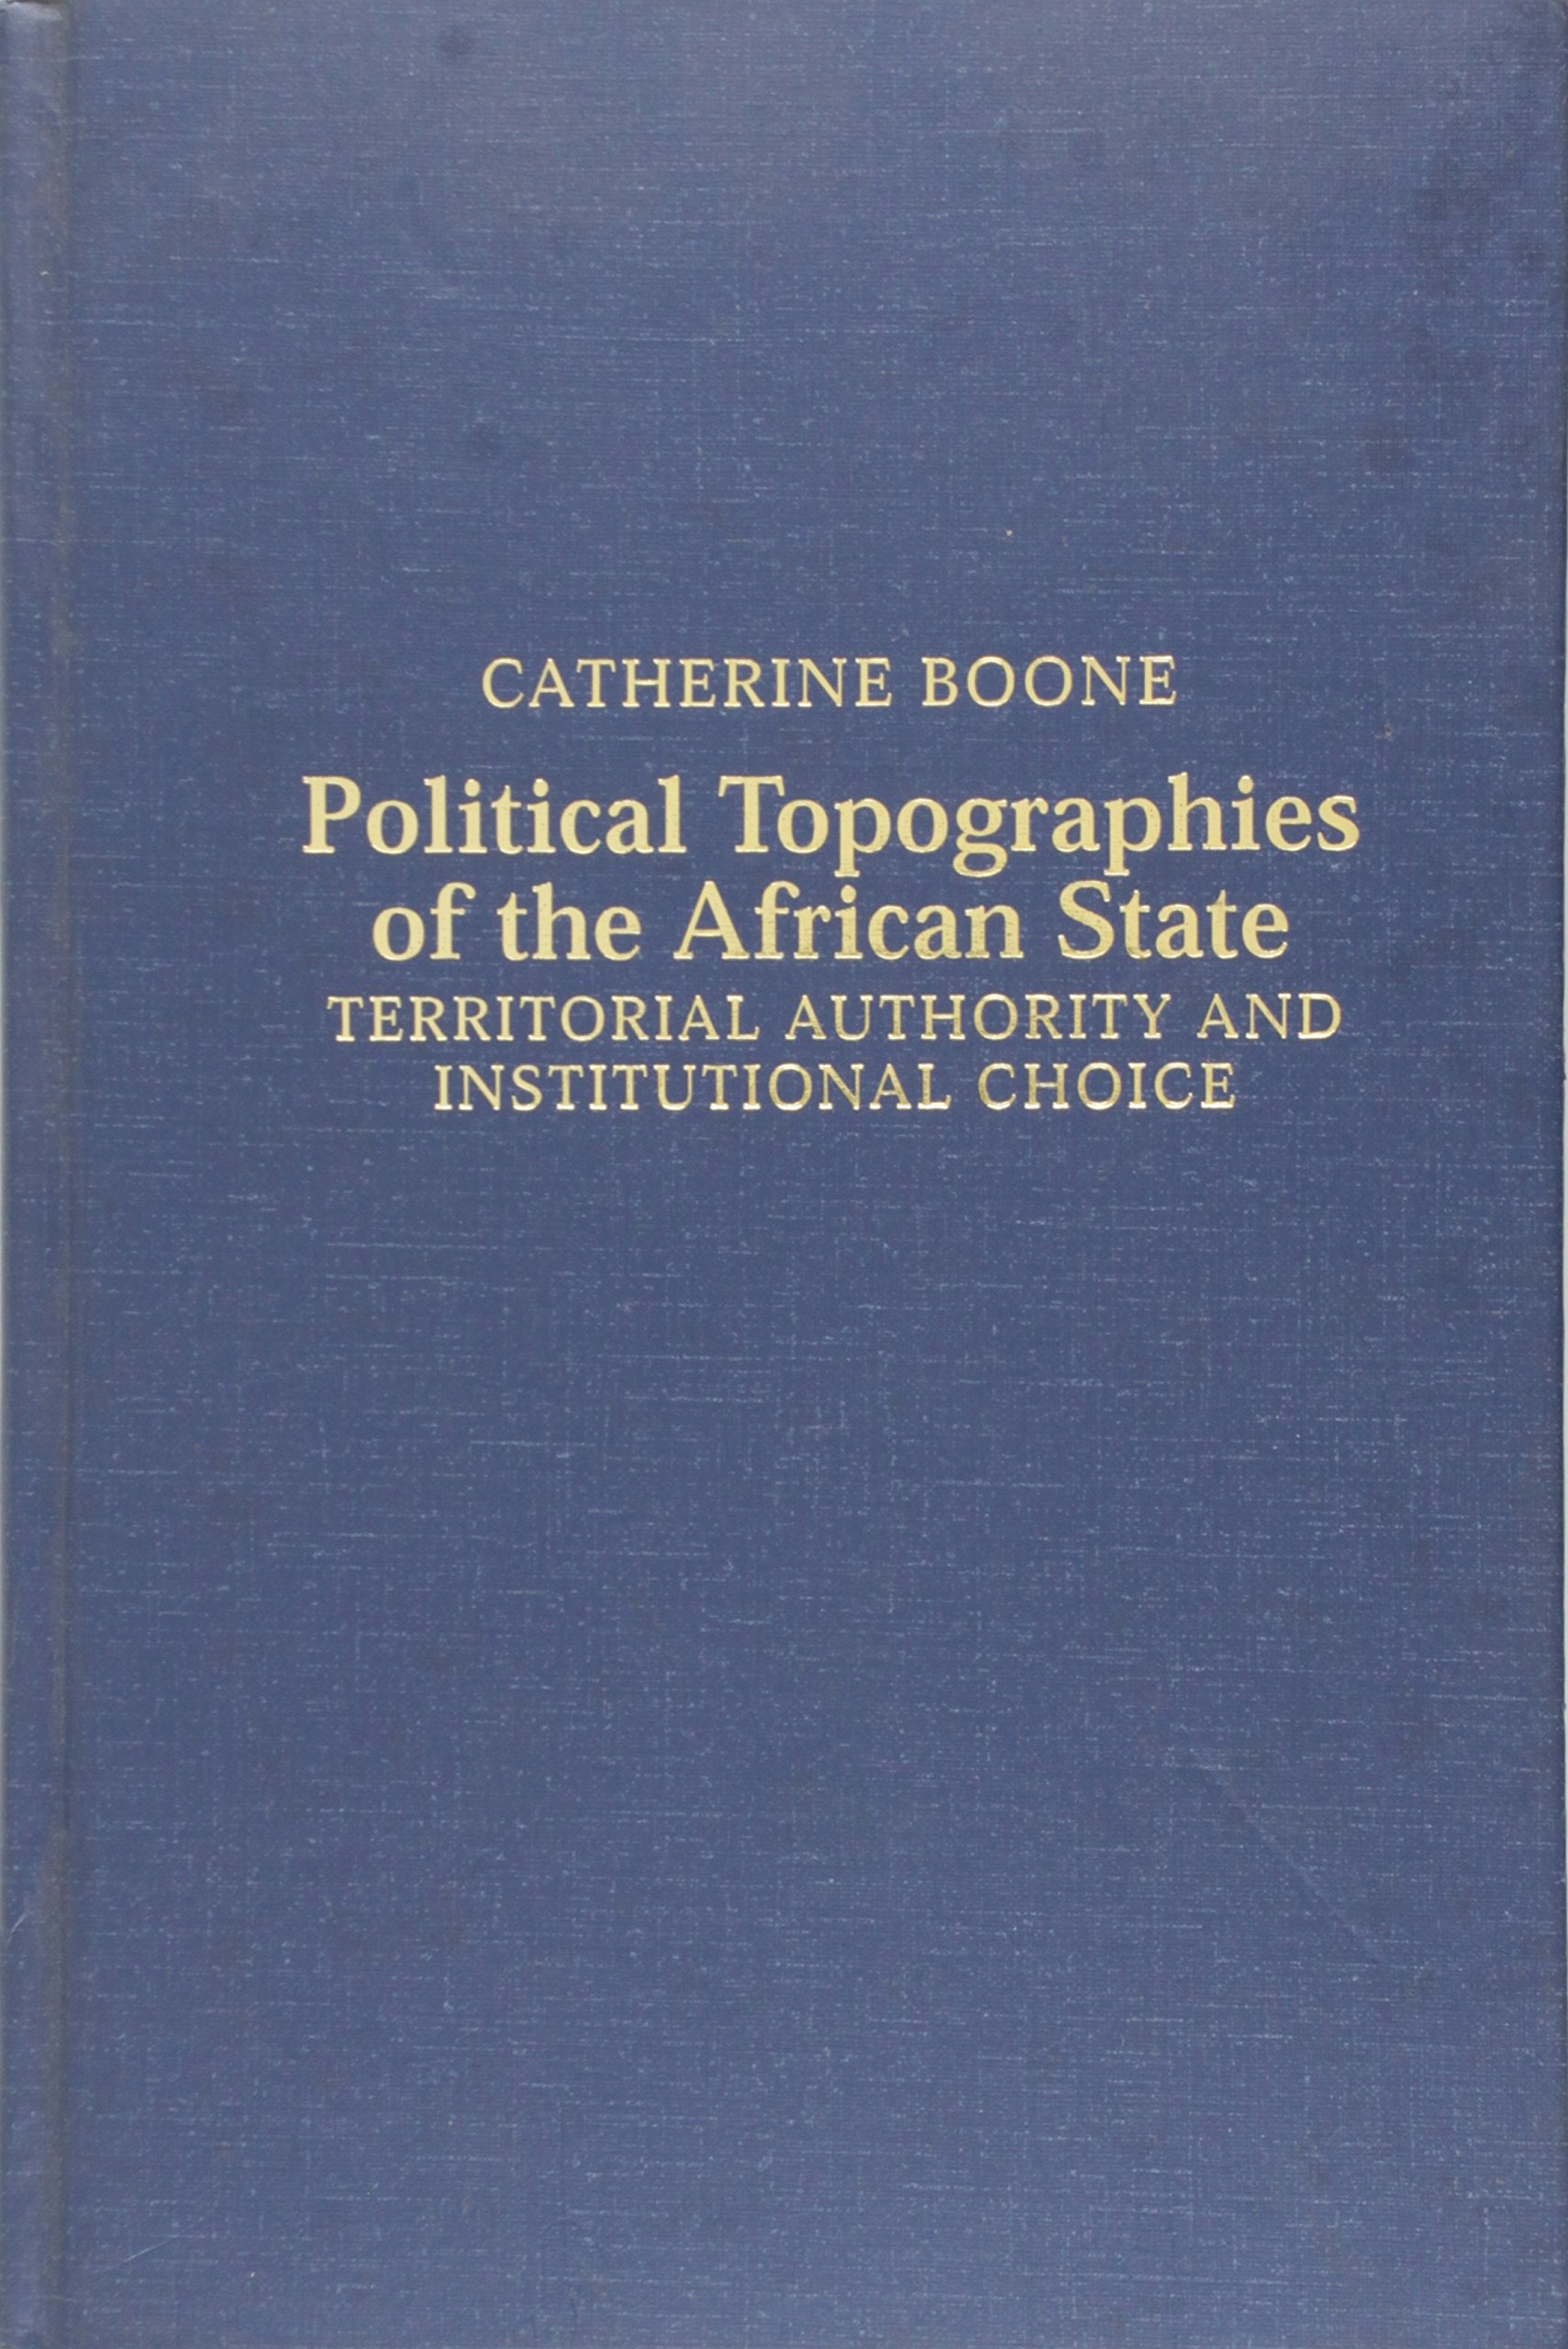 Read Online Political Topographies of the African State: Territorial Authority and Institutional Choice (Cambridge Studies in Comparative Politics) pdf